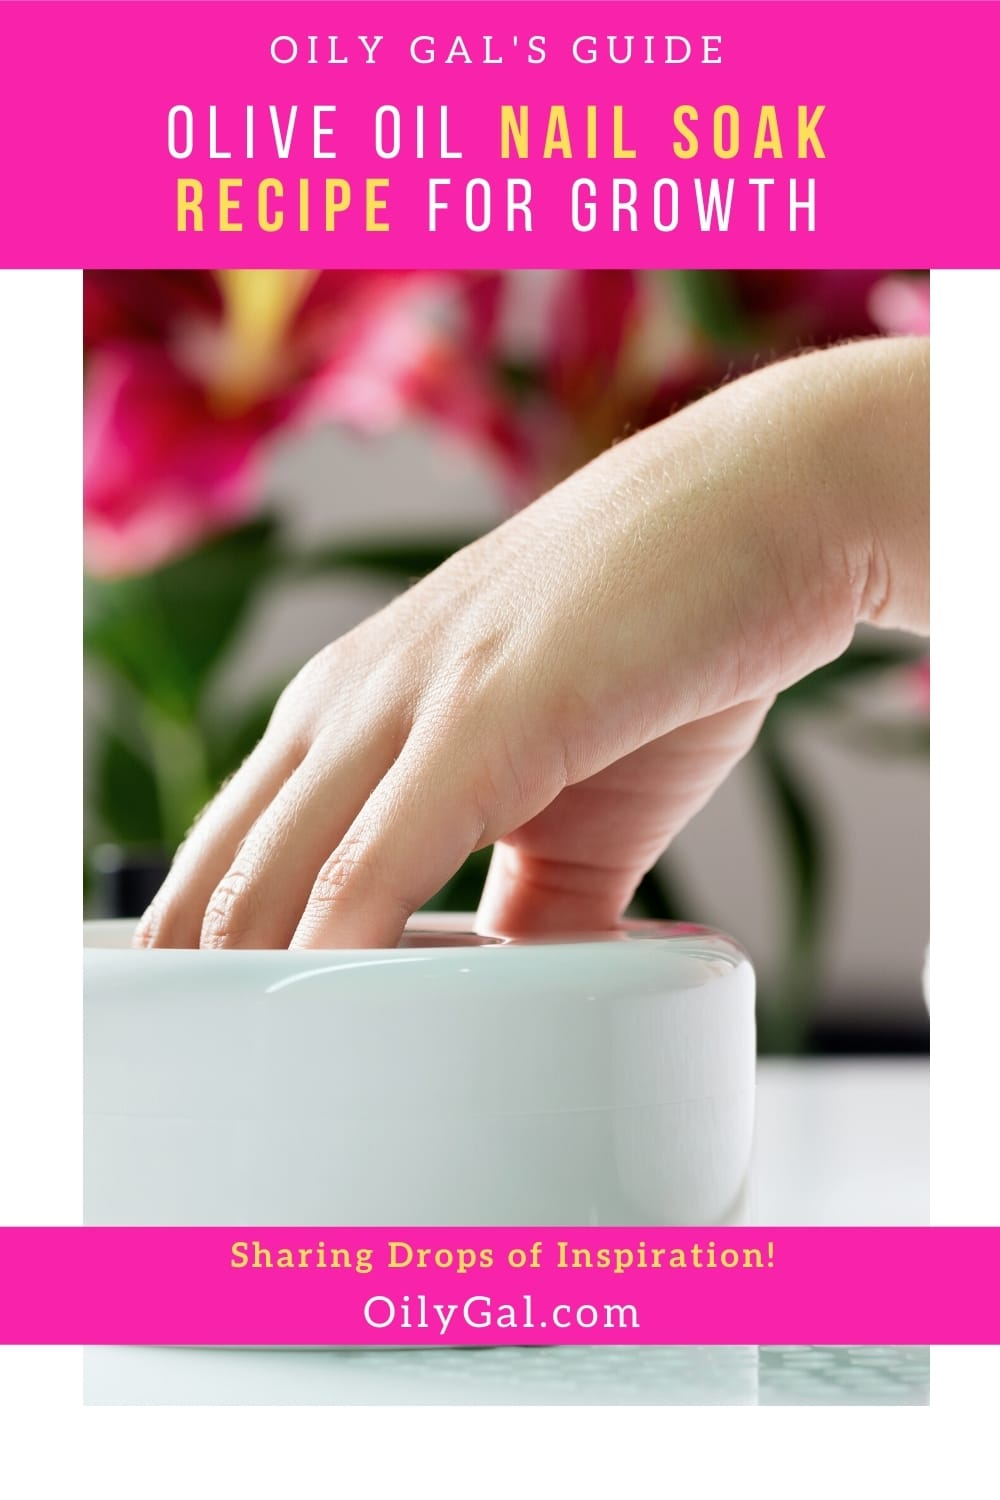 how to use olive oil for nail soak